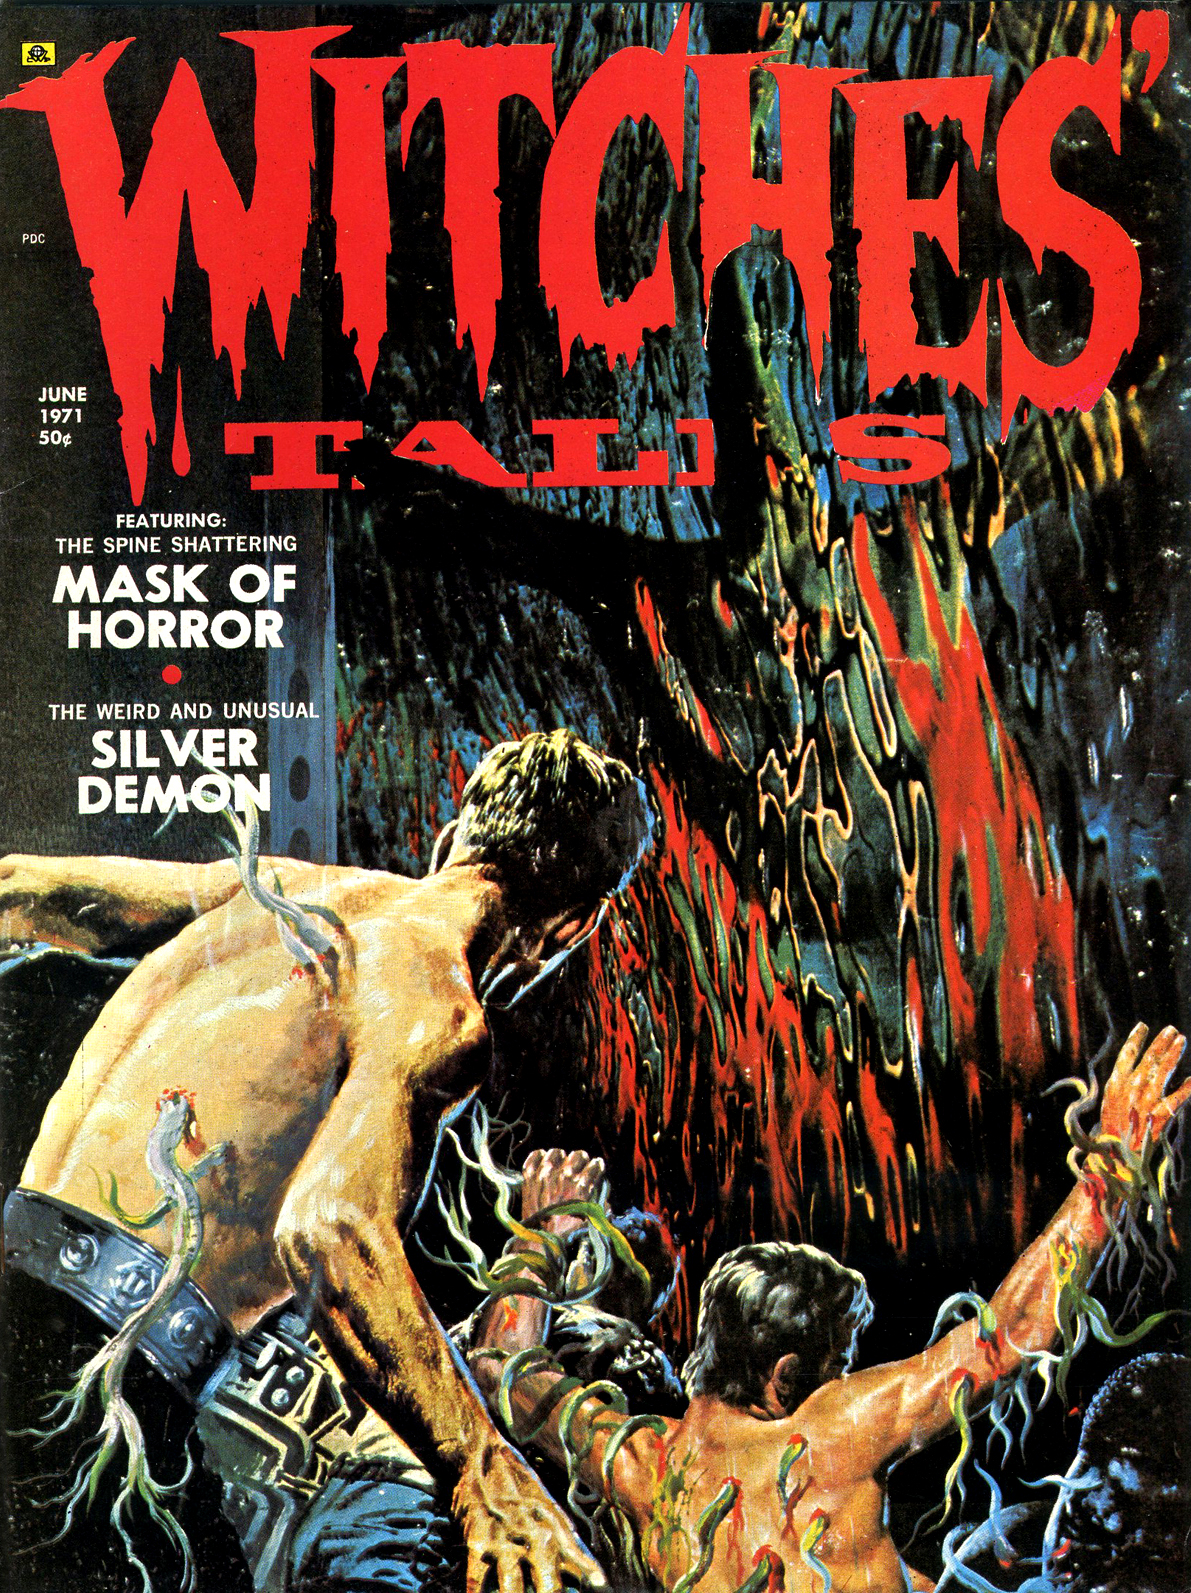 Witches Tales Vol. 3 #3 (Eerie Publications 1971)